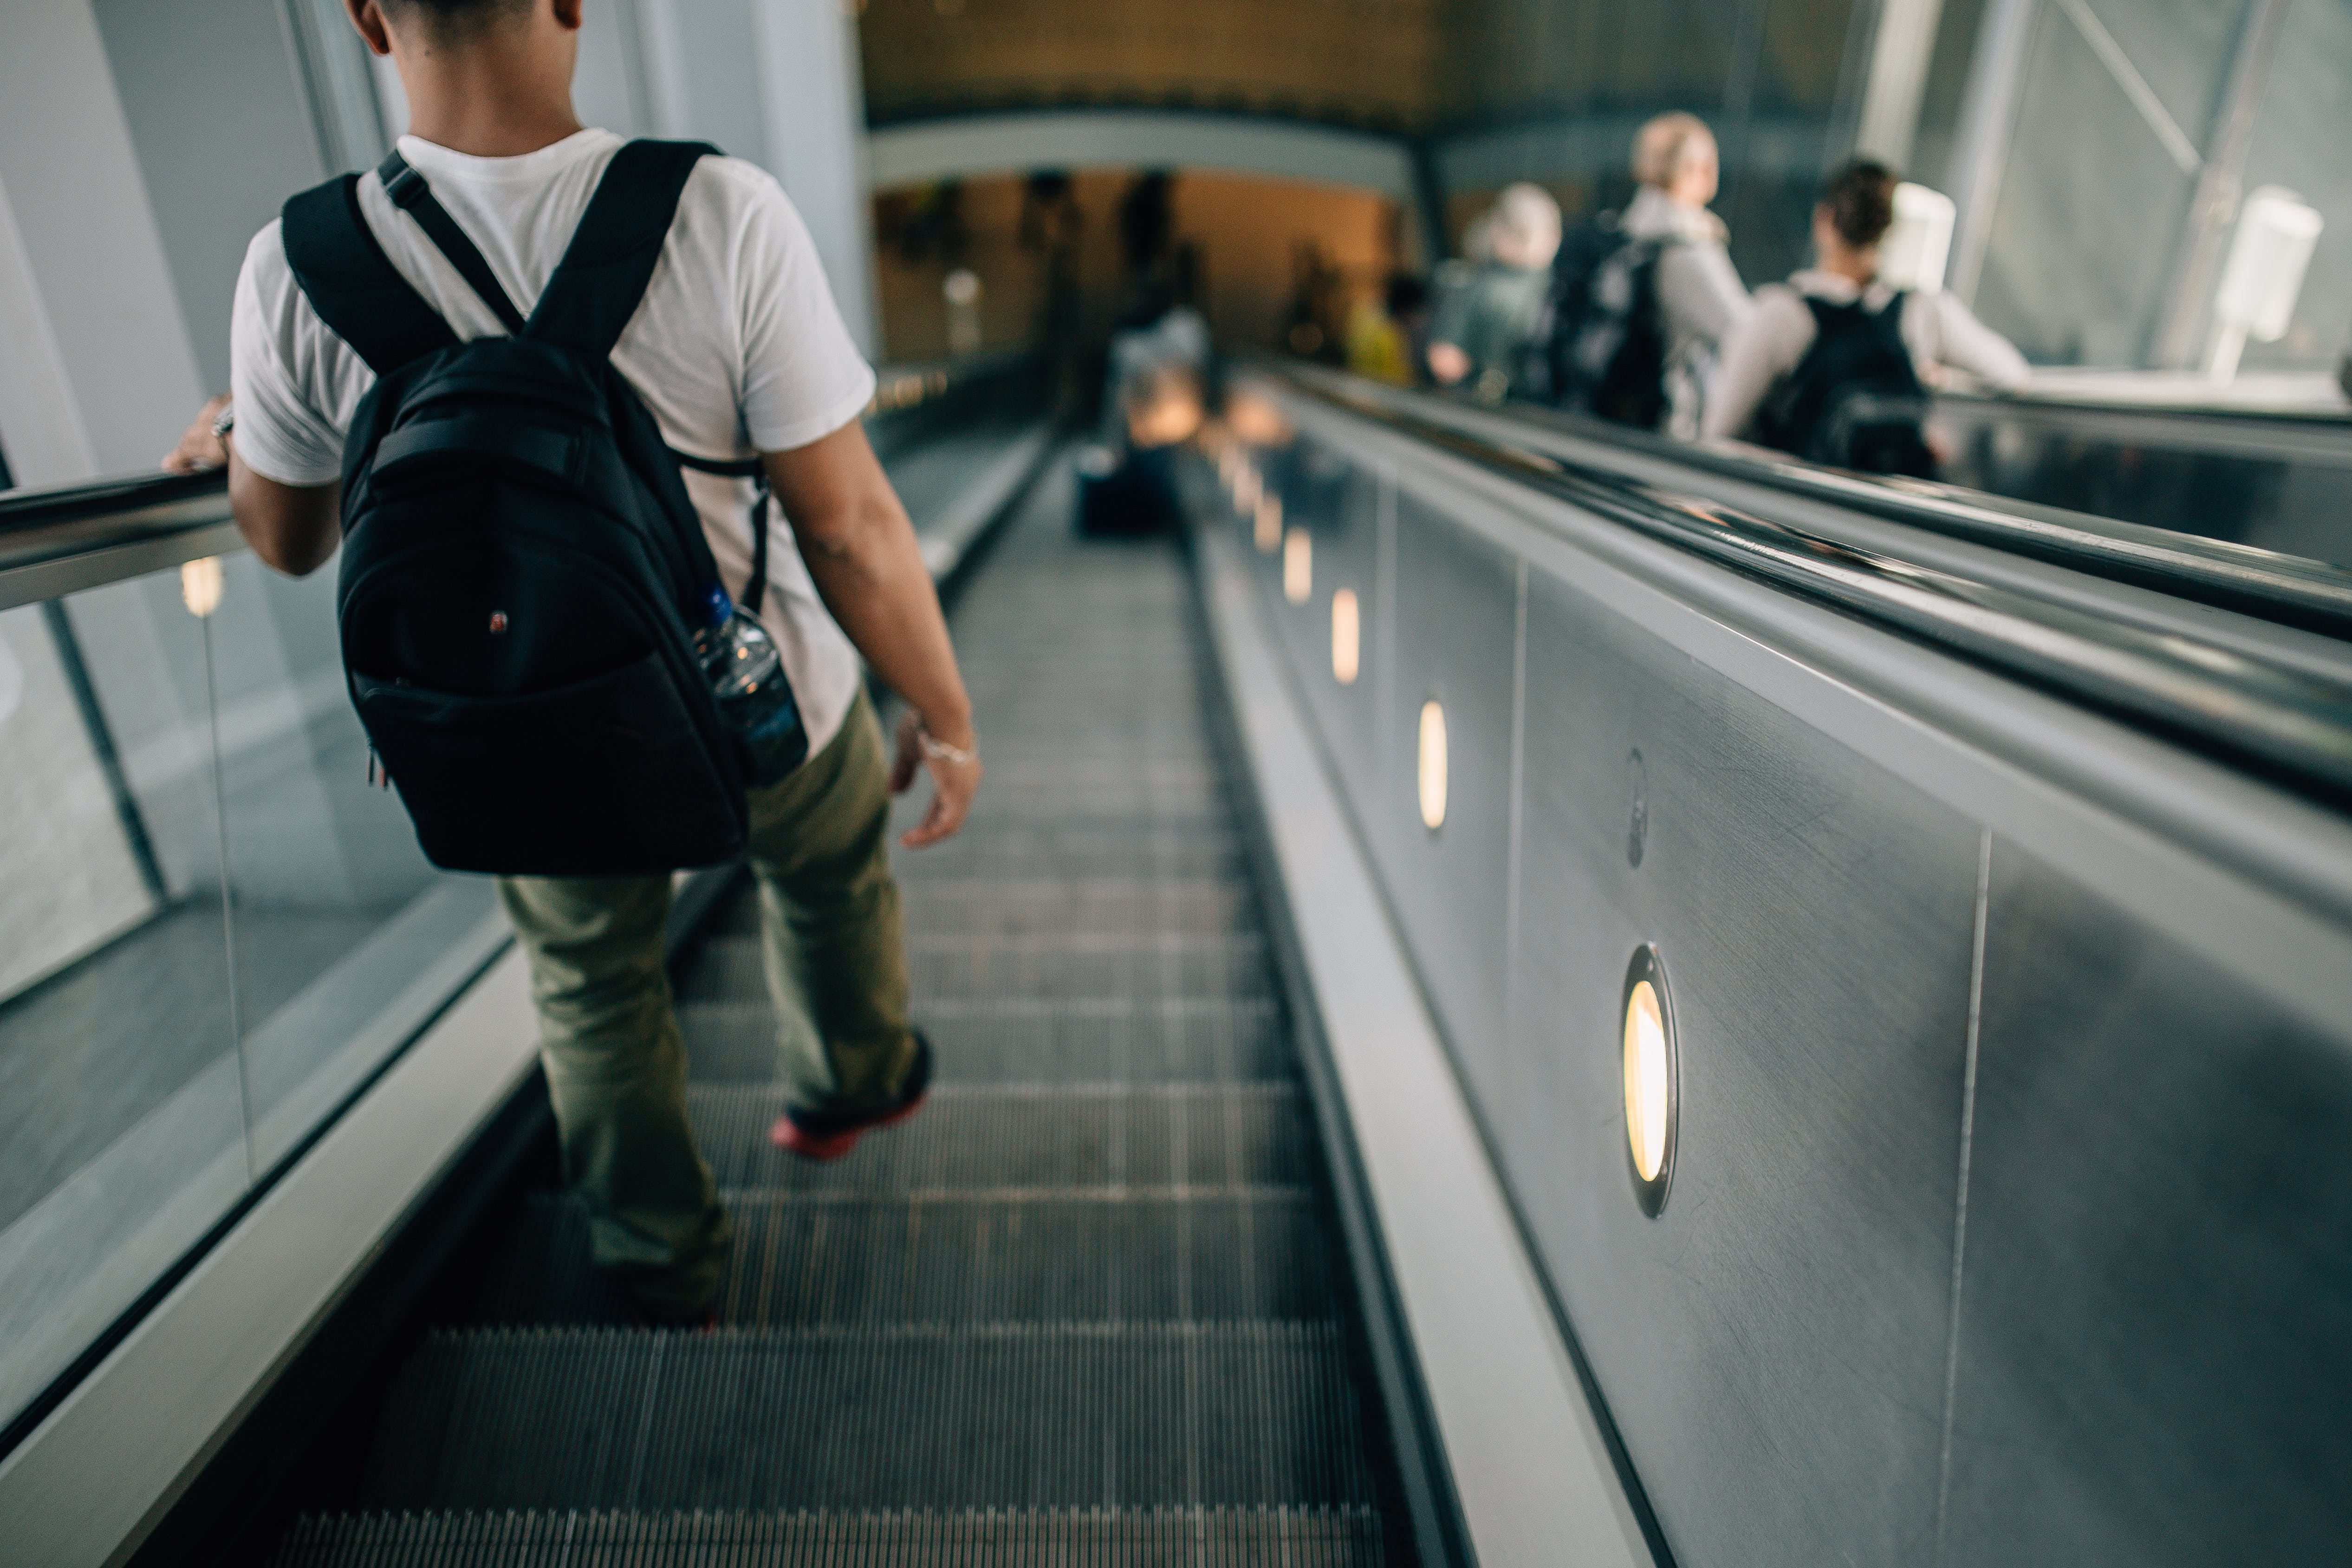 Person Wearing Black Backpack Riding Down the Escalator